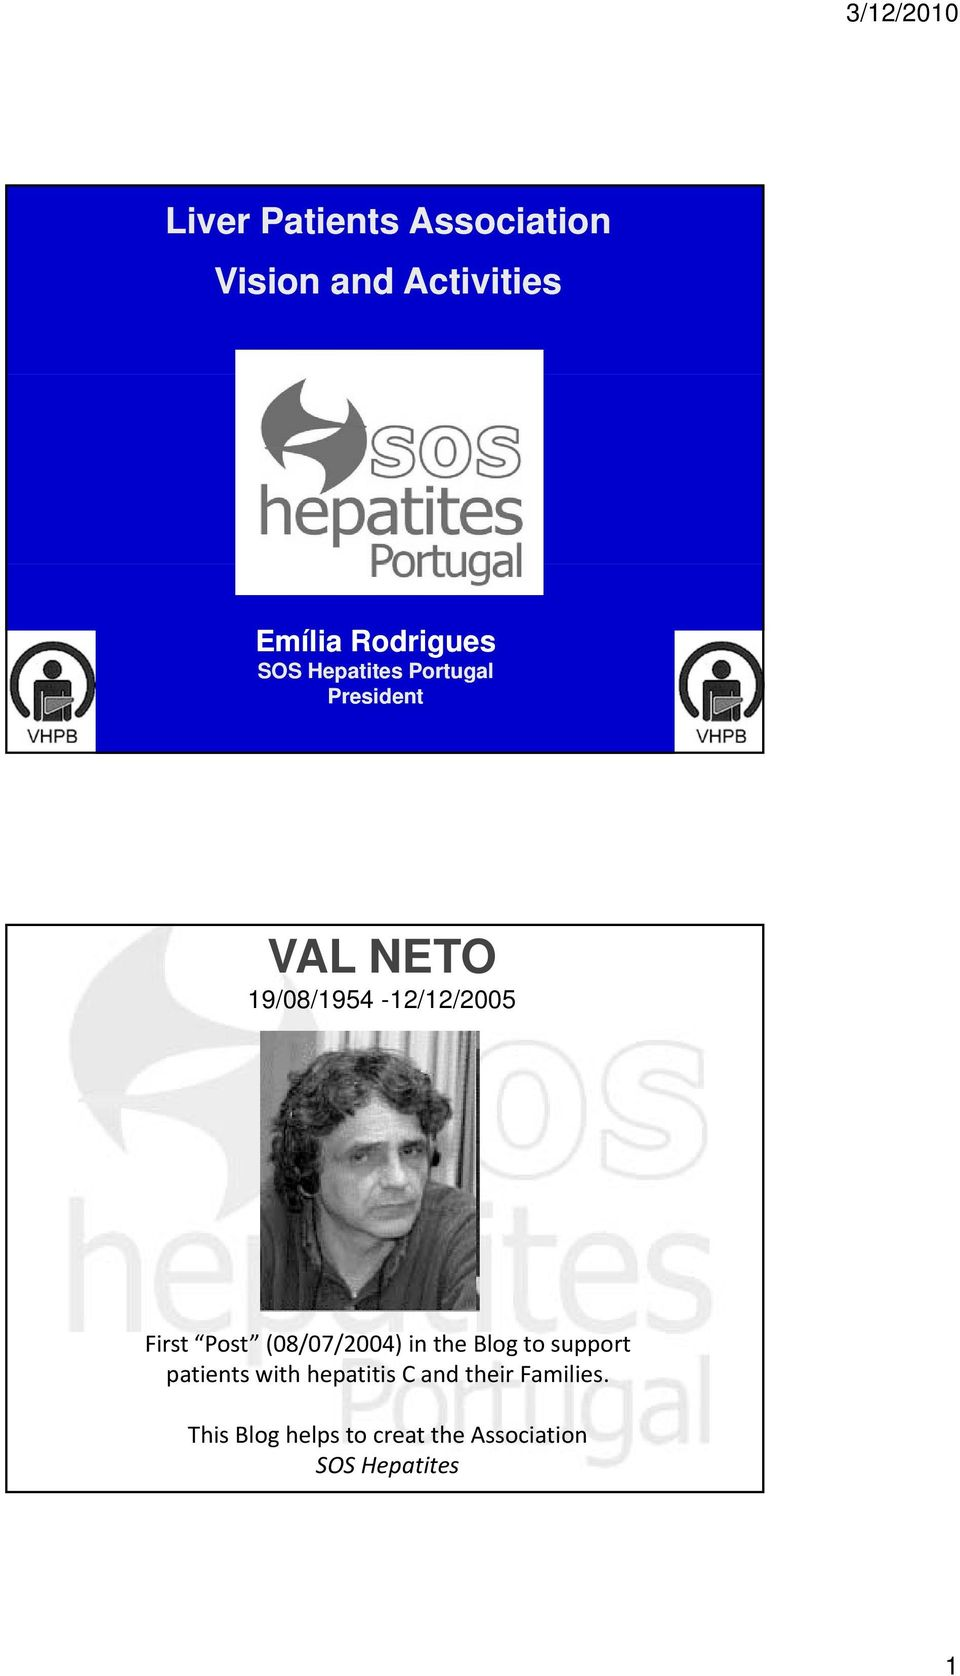 Post (08/07/2004) in the Blog to support patients with hepatitis C